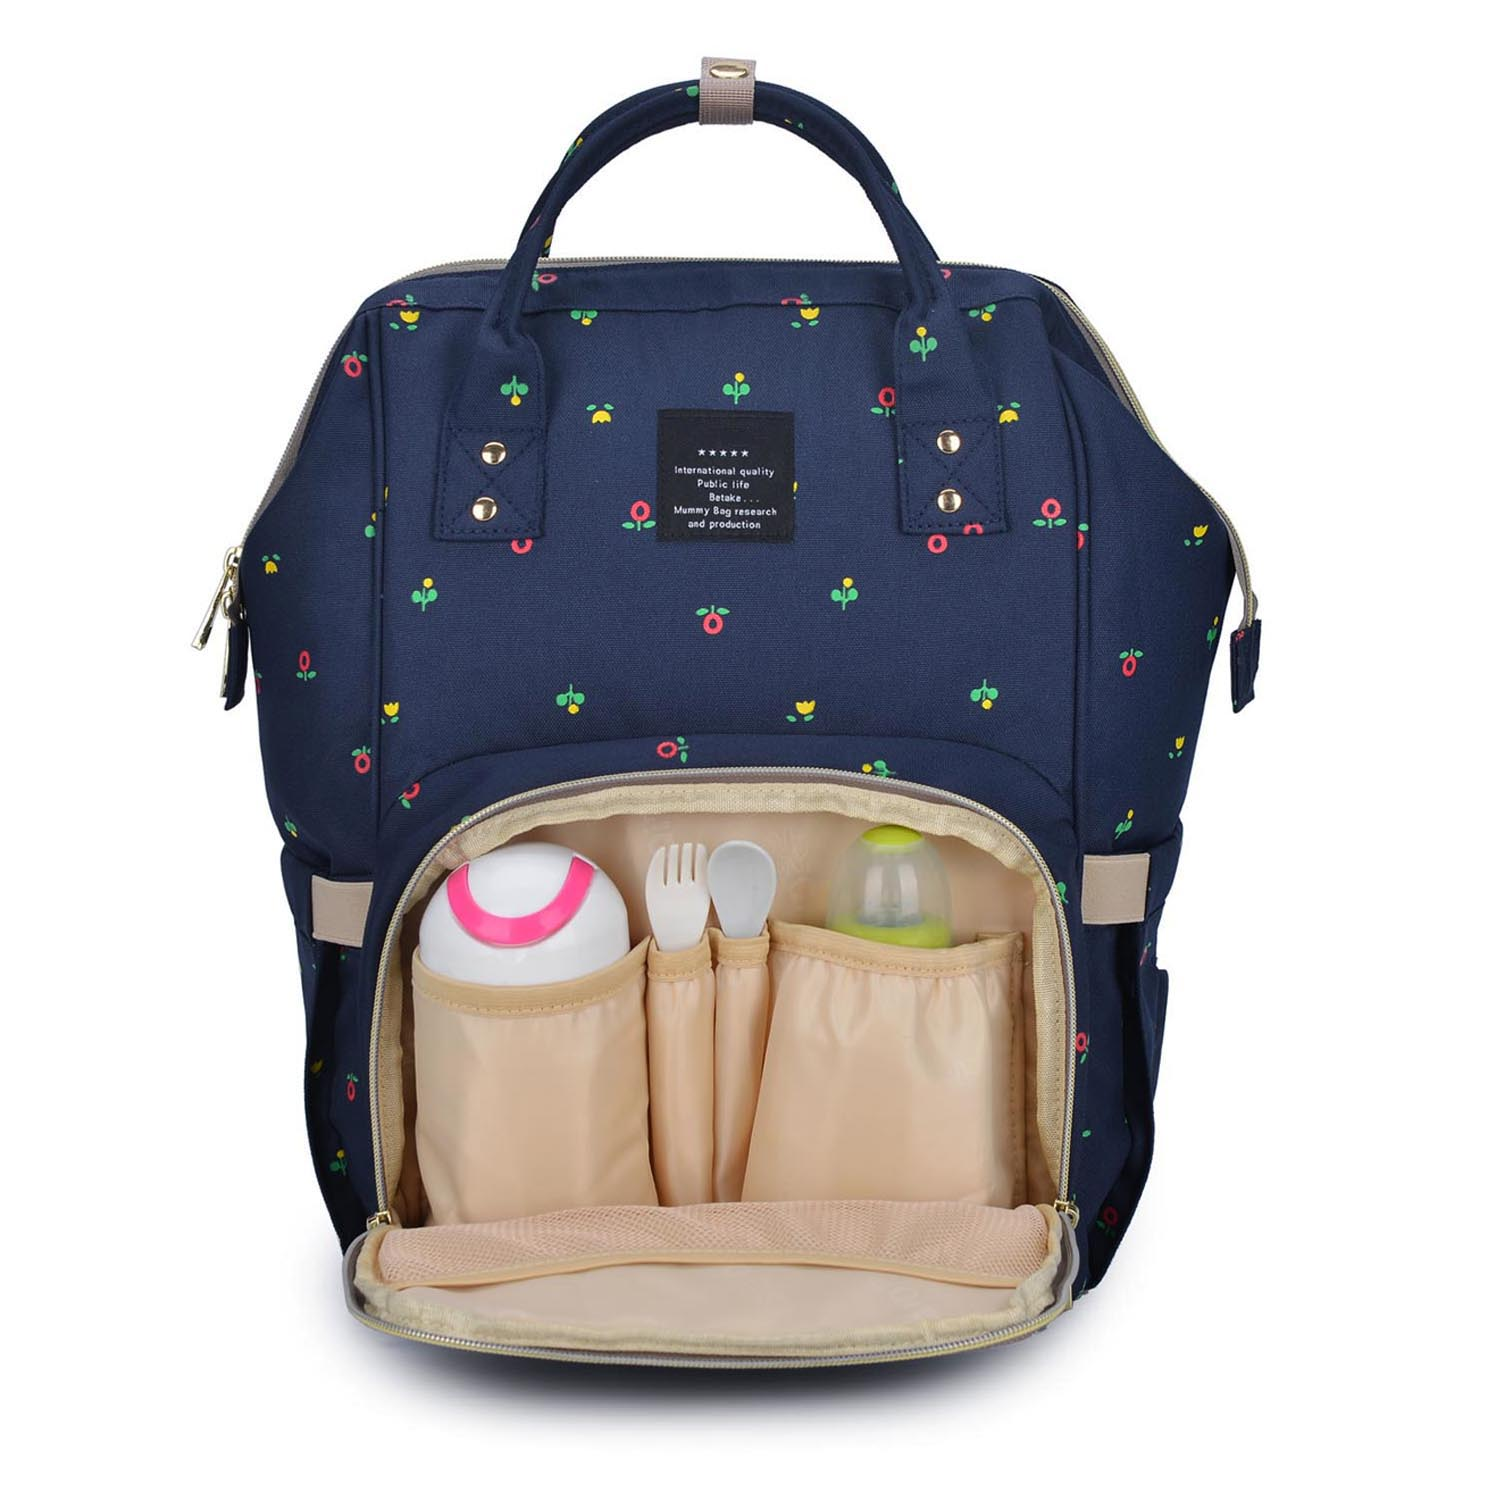 Nappy Diaper Backpack Bag